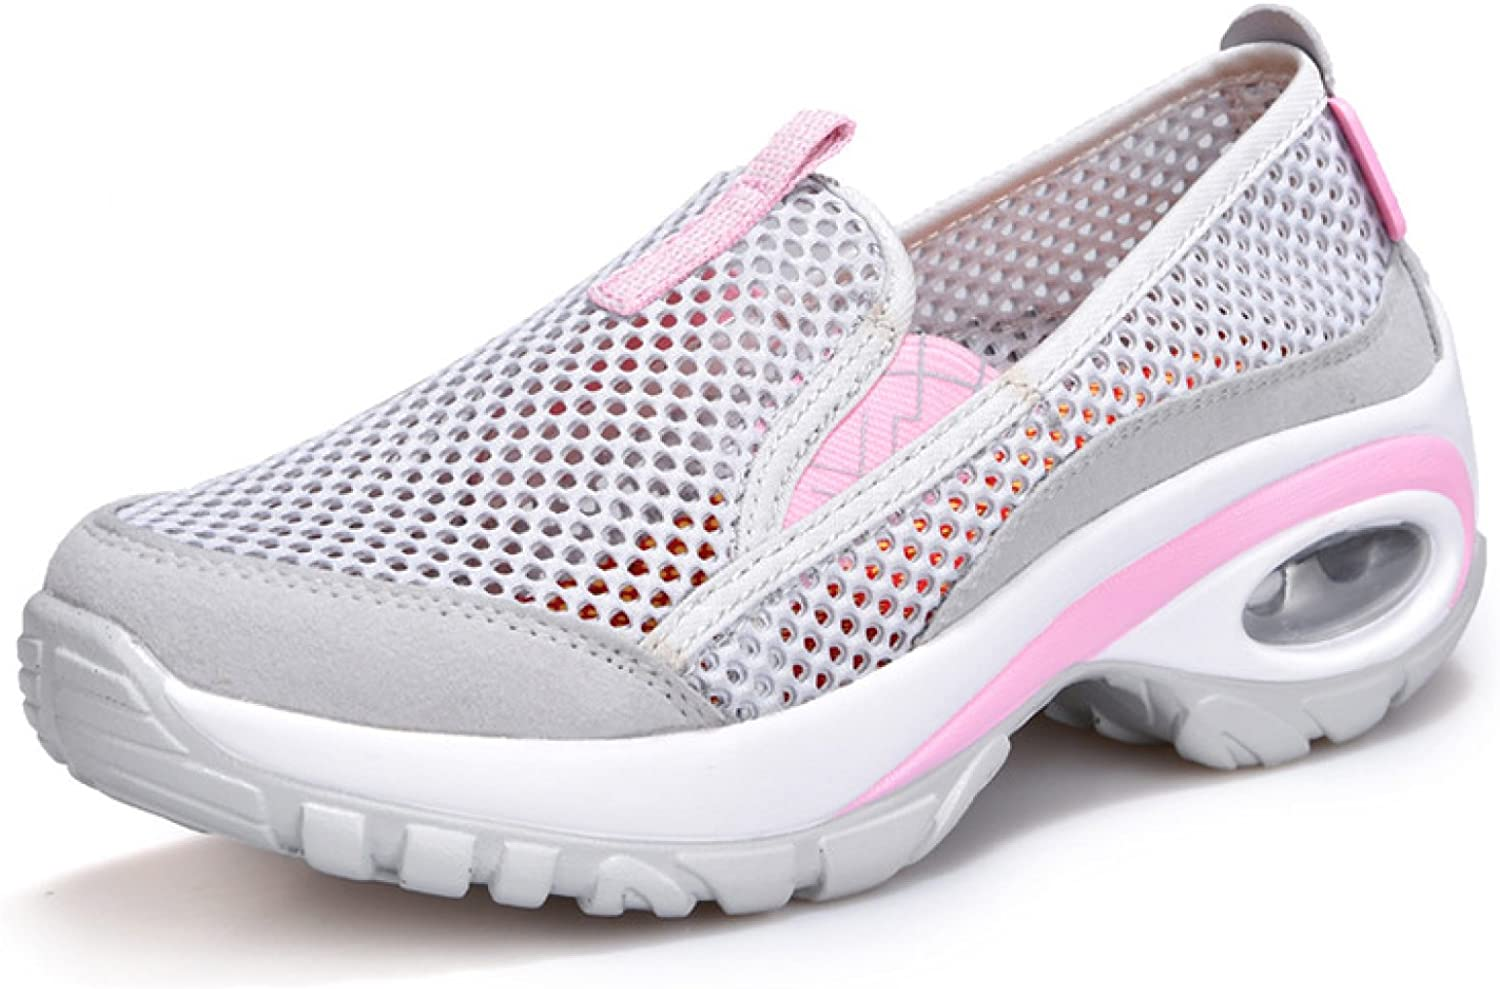 LXXAWomen Summer Beach Breathable Mesh Sports Sandals Quick Drying Trekking shoes Athletic Sneakers